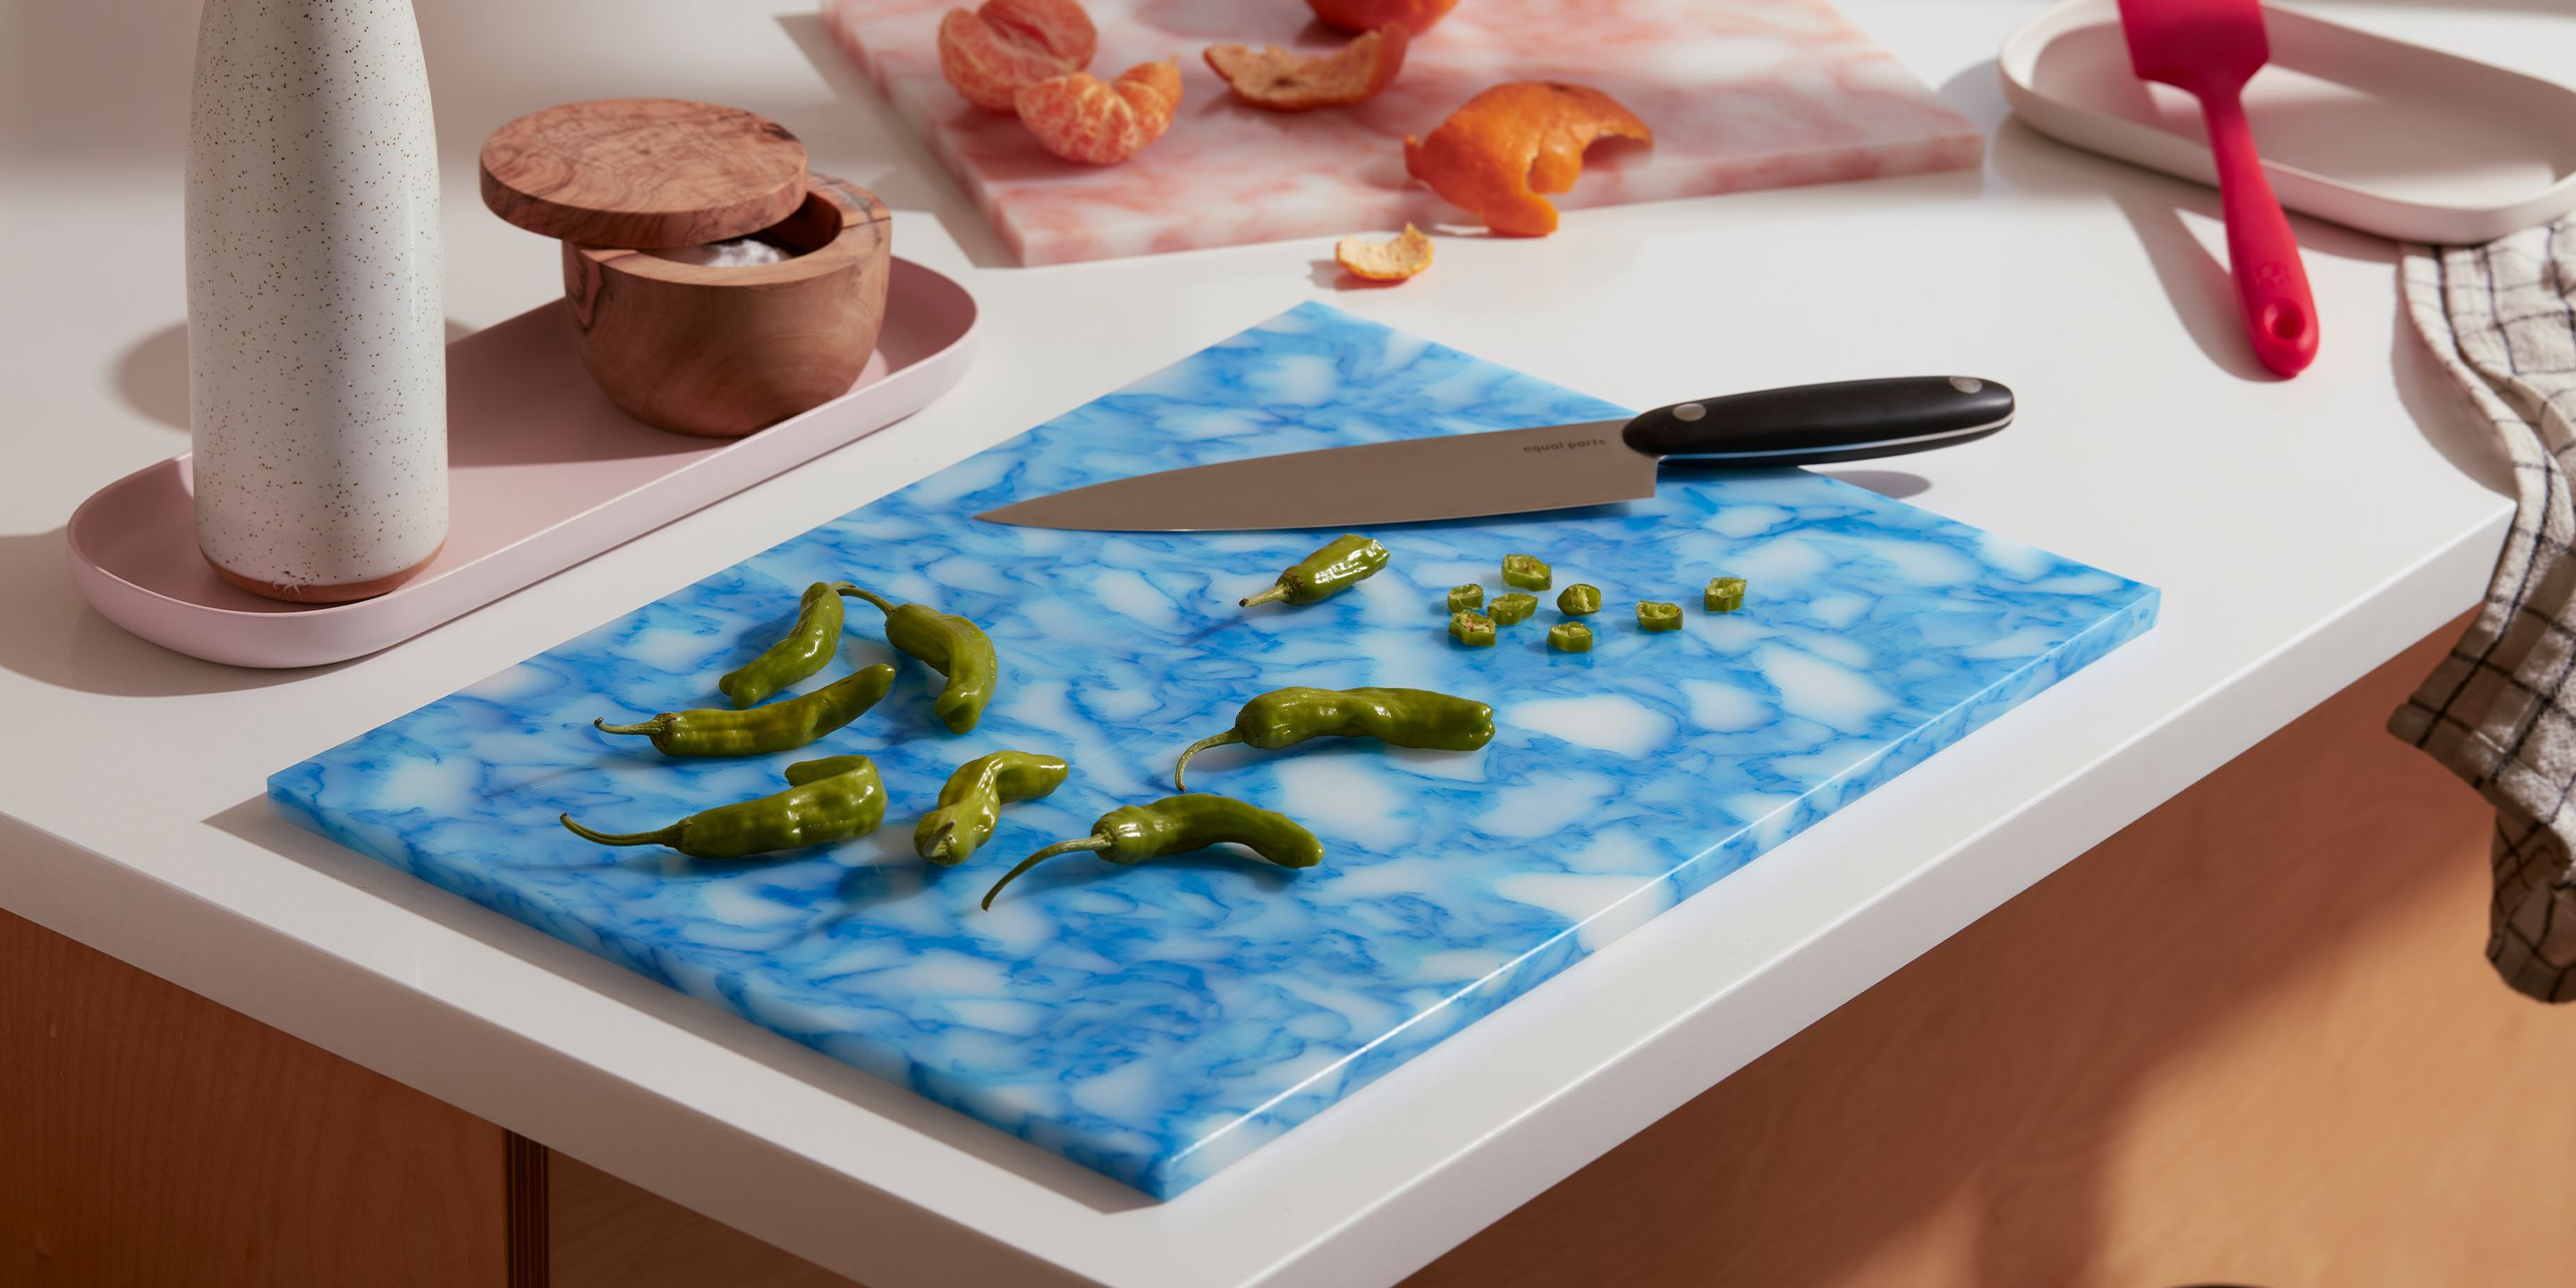 Large Blue Plastic Cutting Board on Counter with EP Chef's Knife